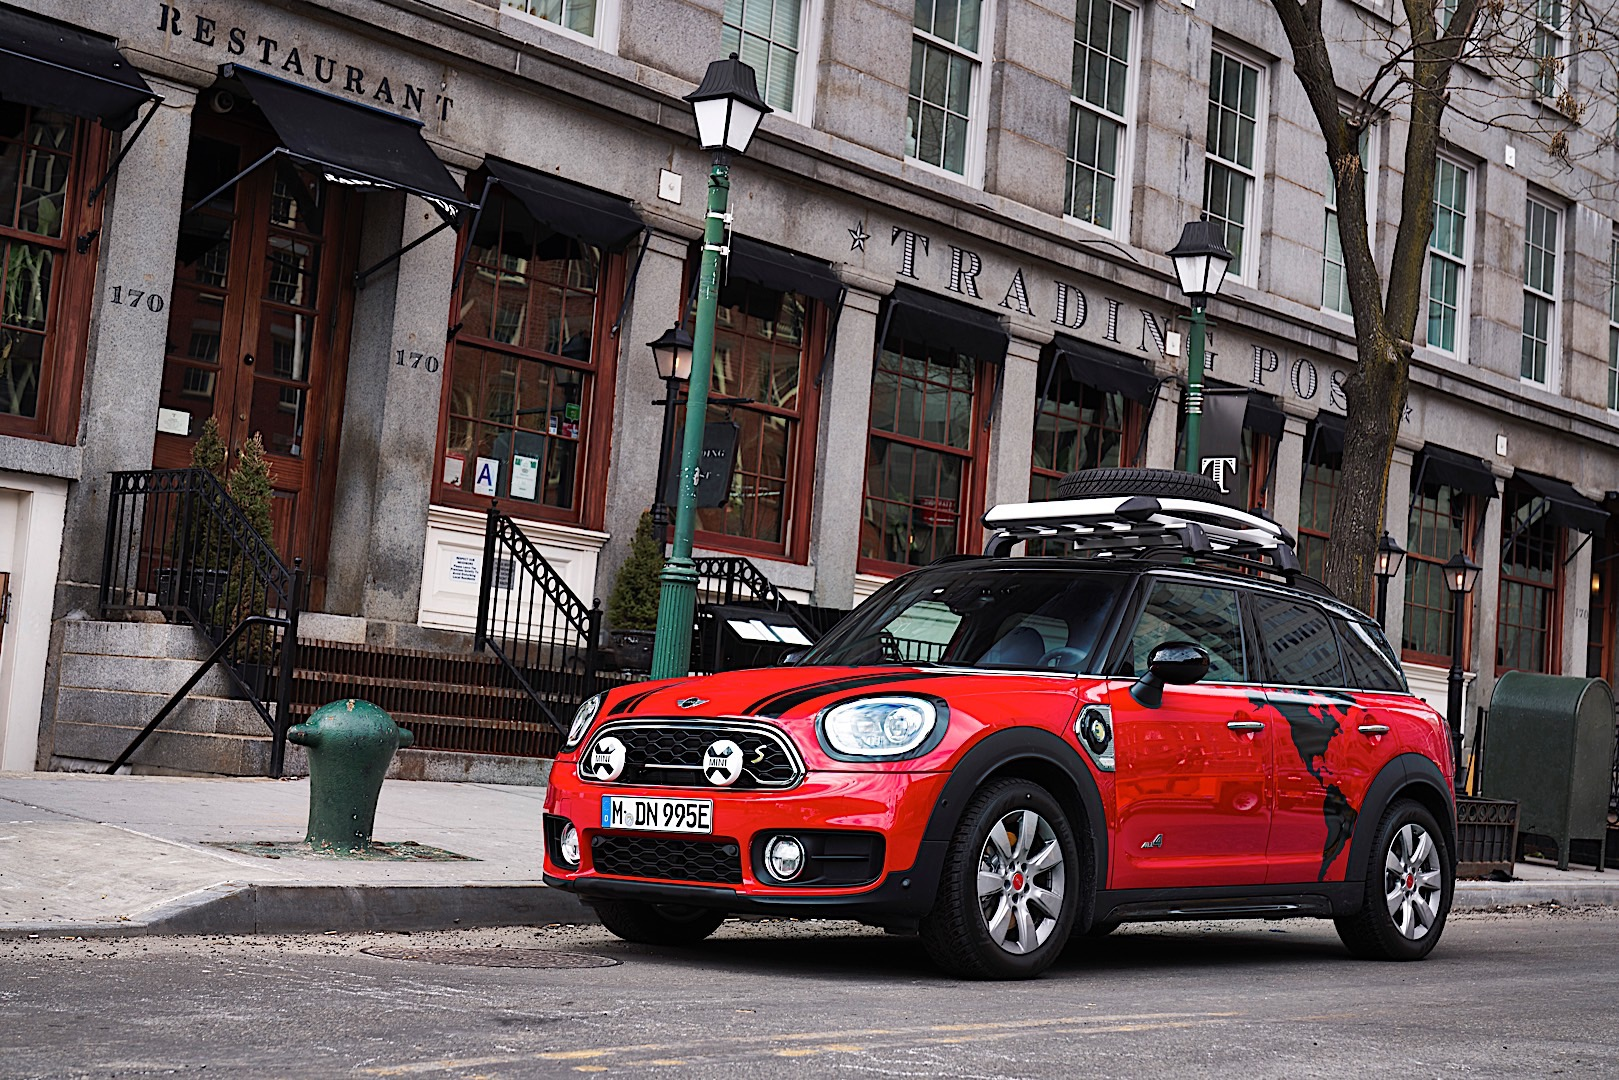 More MINI crossovers could come to the British marquee